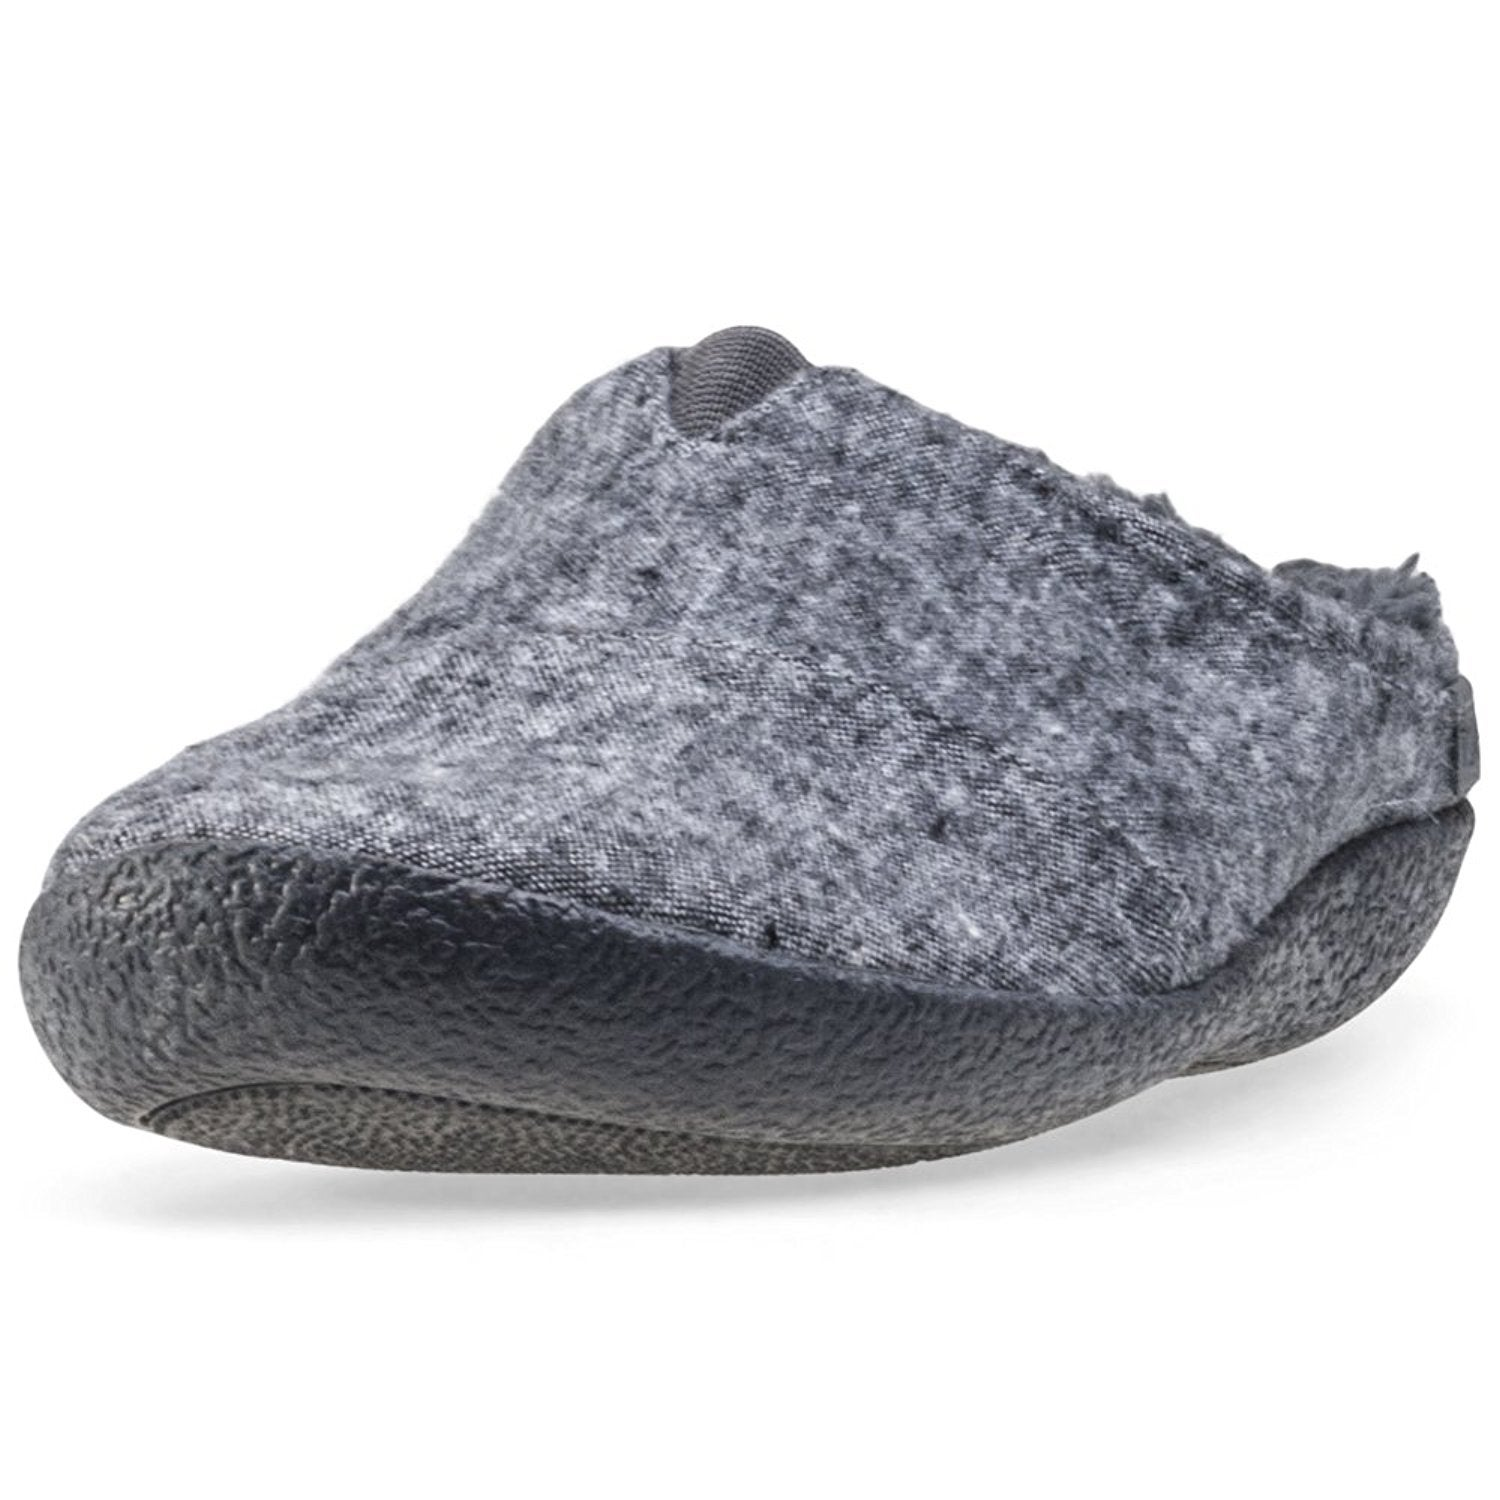 e22e9f47993 Shop TOMS Mens Berkeley Slipper - Free Shipping Today - Overstock - 19270975